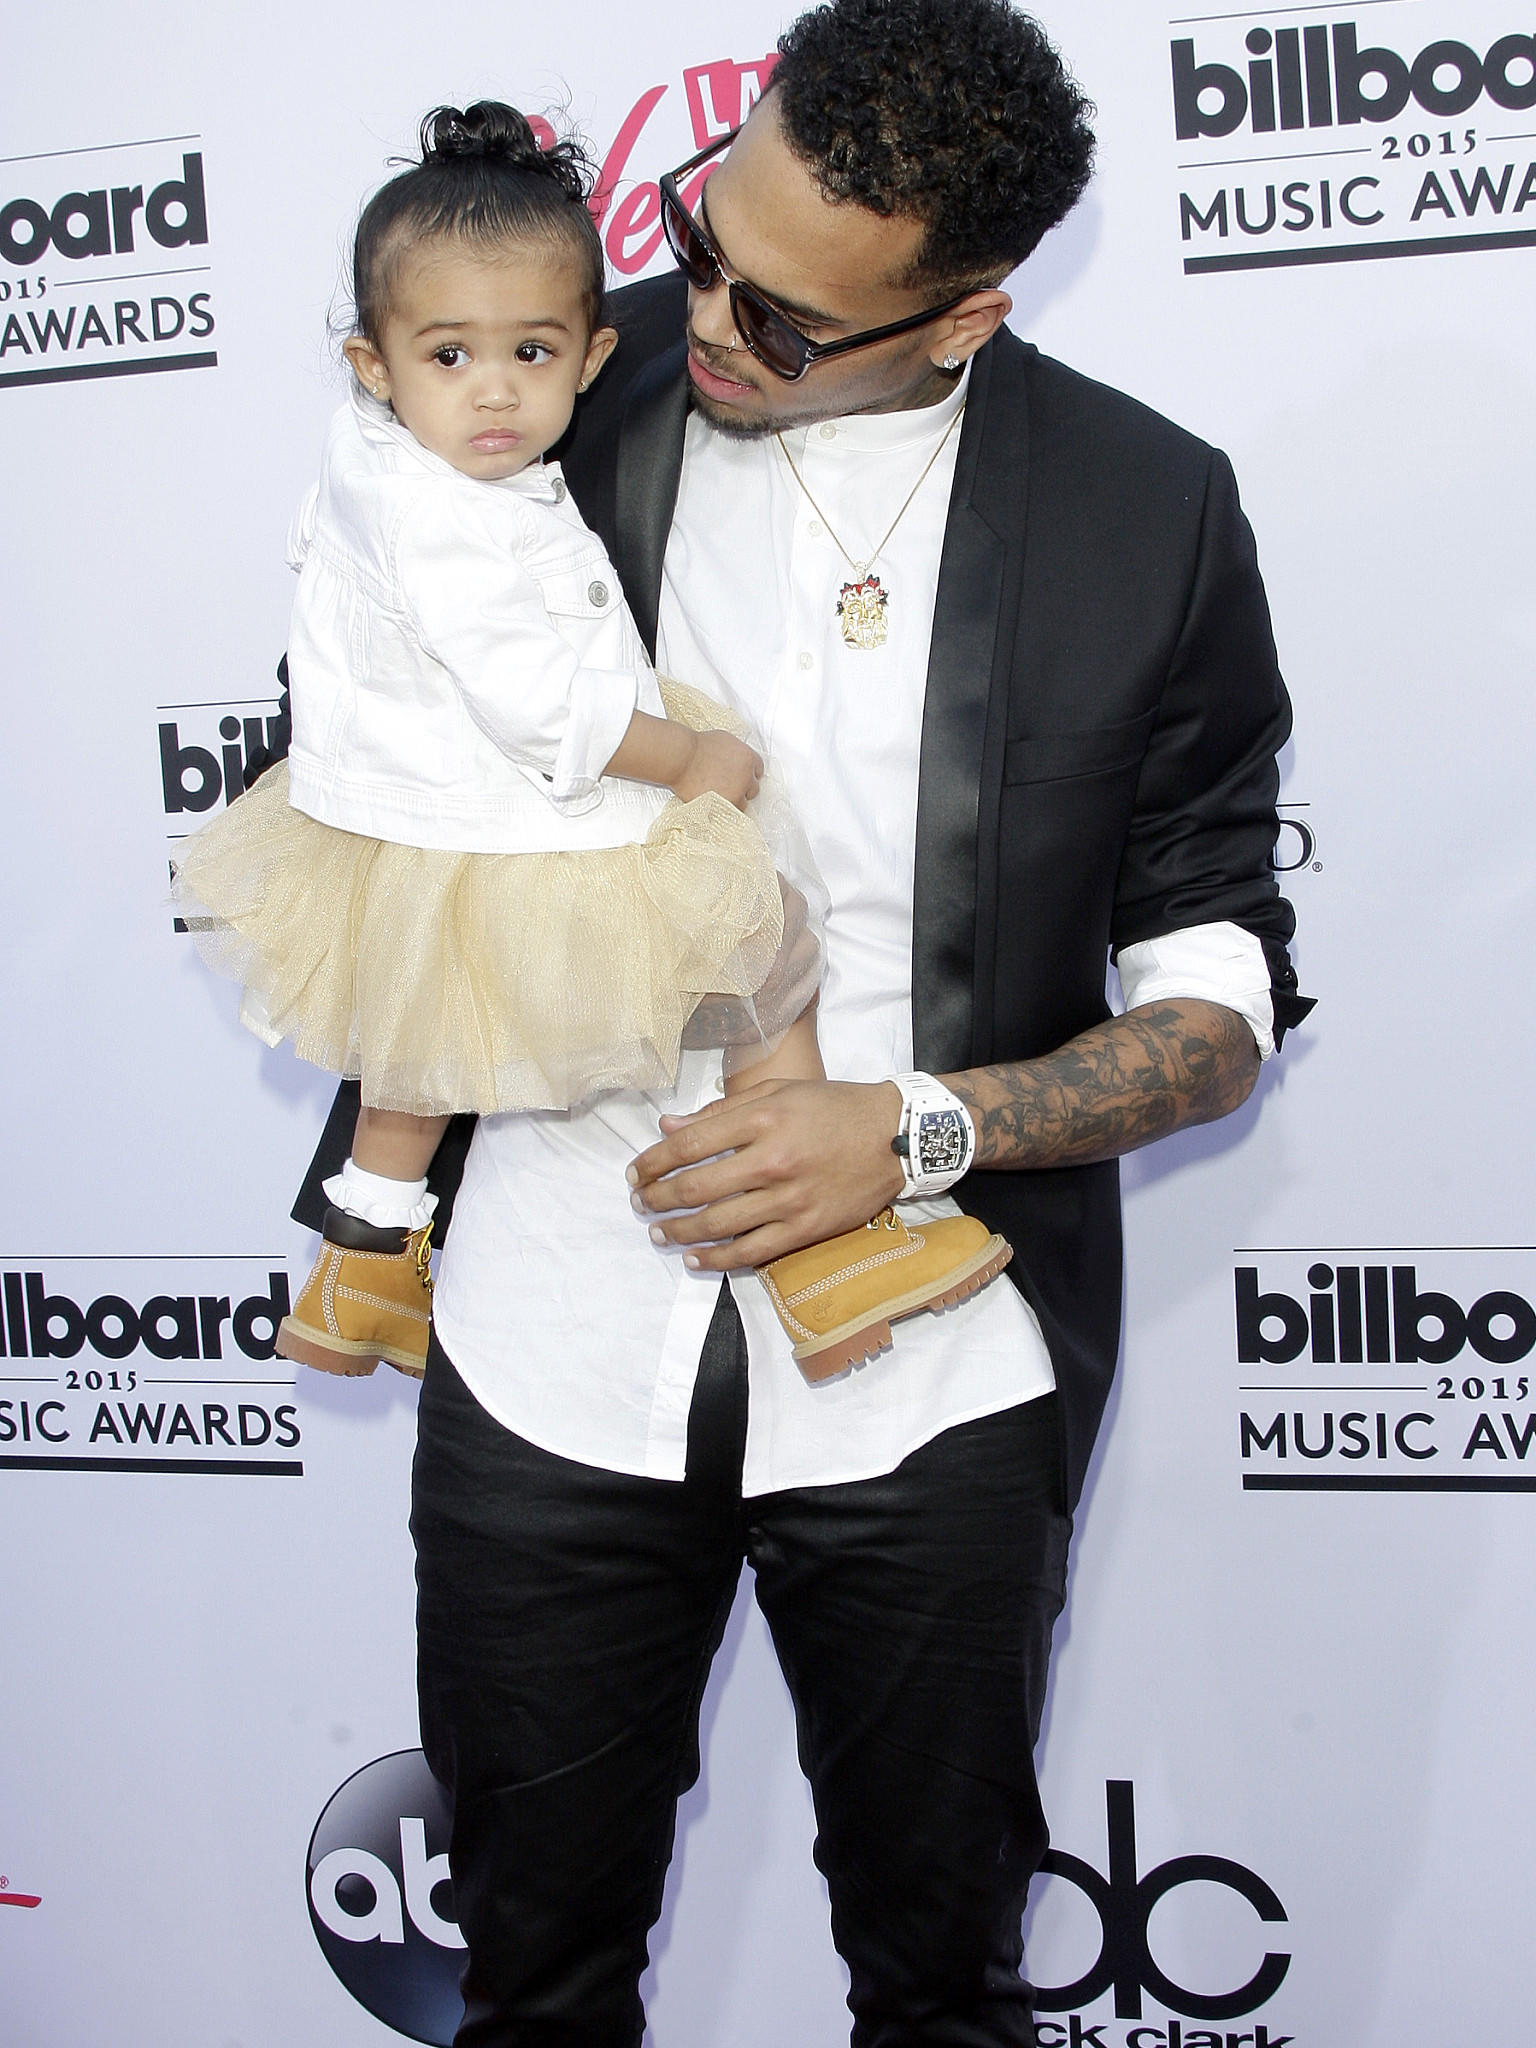 Billboard Music Awards 2015 Highlights Chris Brown Taylor Swift